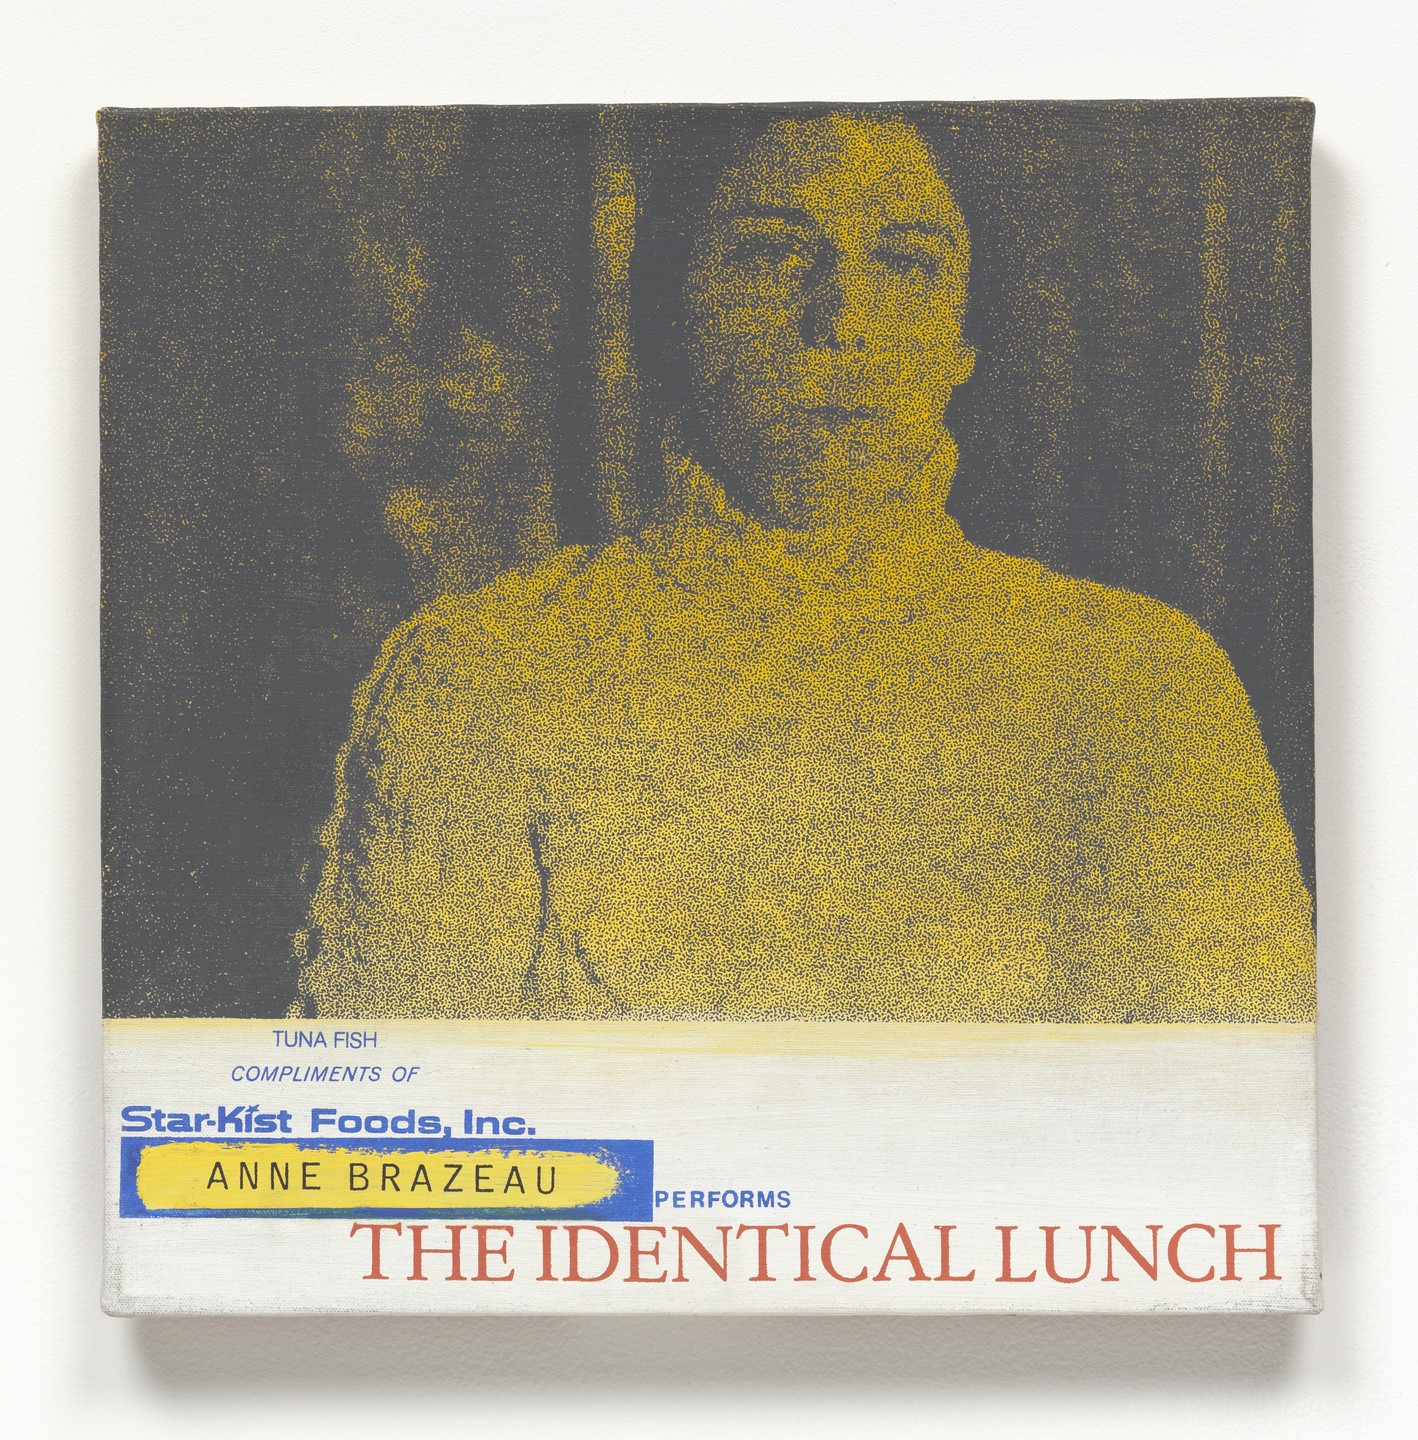 Alison Knowles. Anne Brazeau Performs The Identical Lunch. 1969, realized 1973